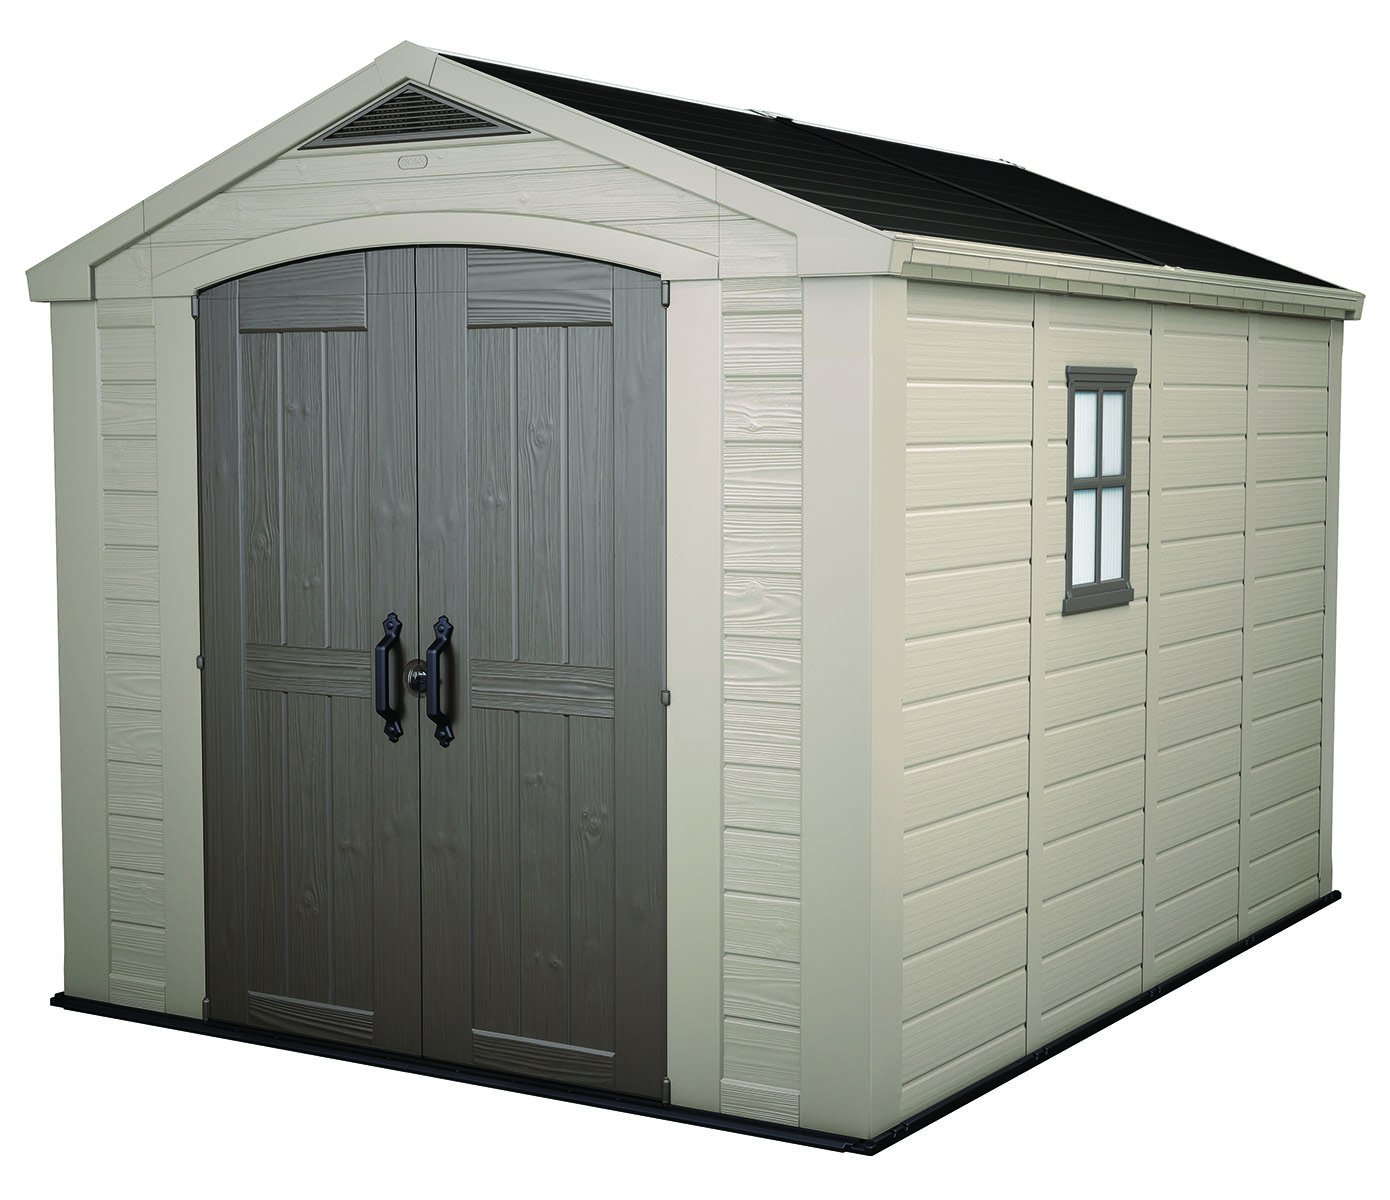 Amazon.com : Keter Factor Large 8 X 11 Ft. Resin Outdoor Yard Garden Storage  Shed, Taupe/Brown : Storage Sheds : Garden U0026 Outdoor